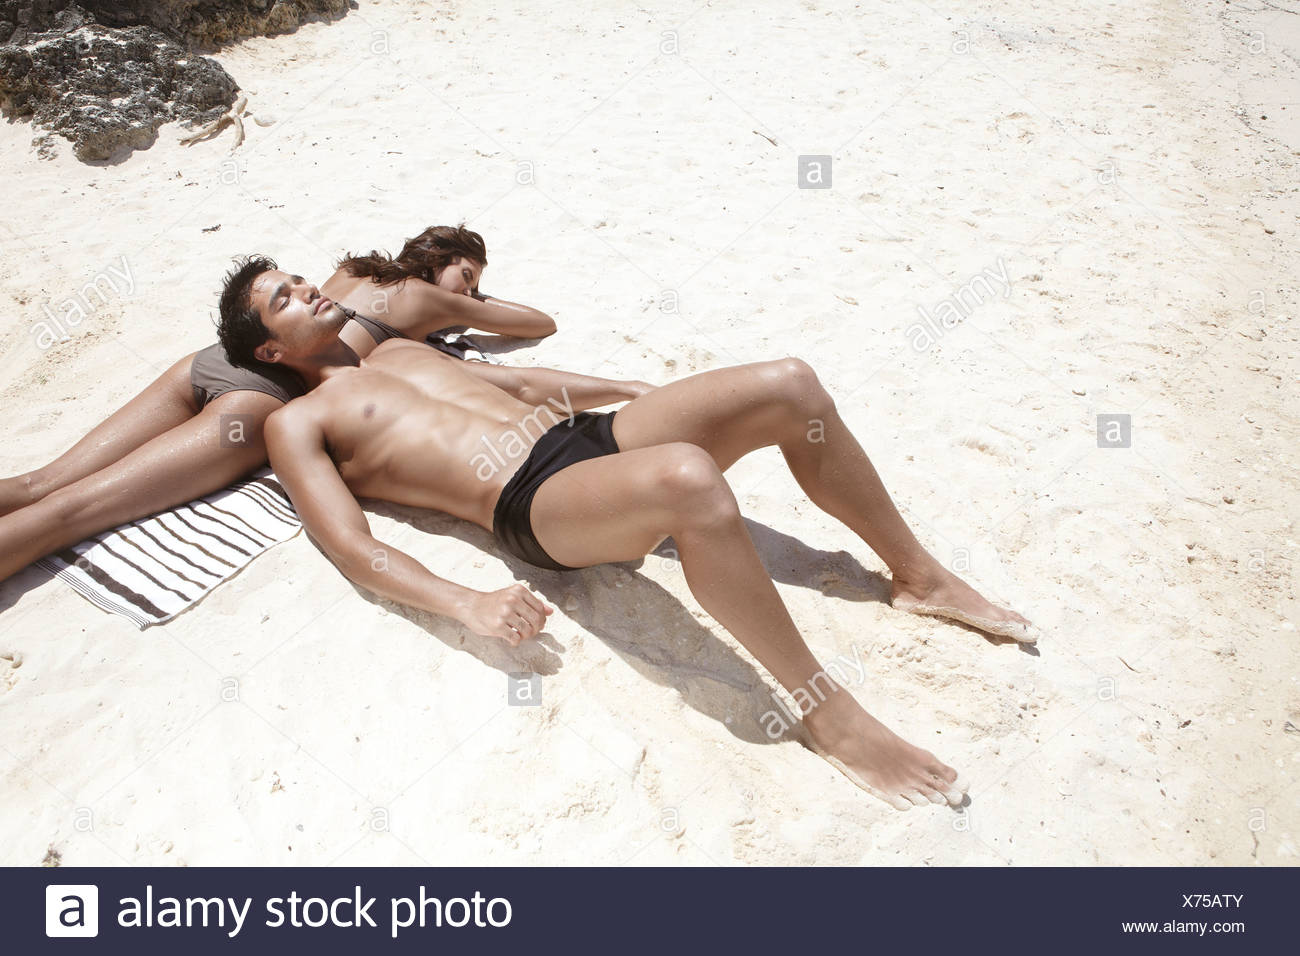 A couple sunbathing. - Stock Image